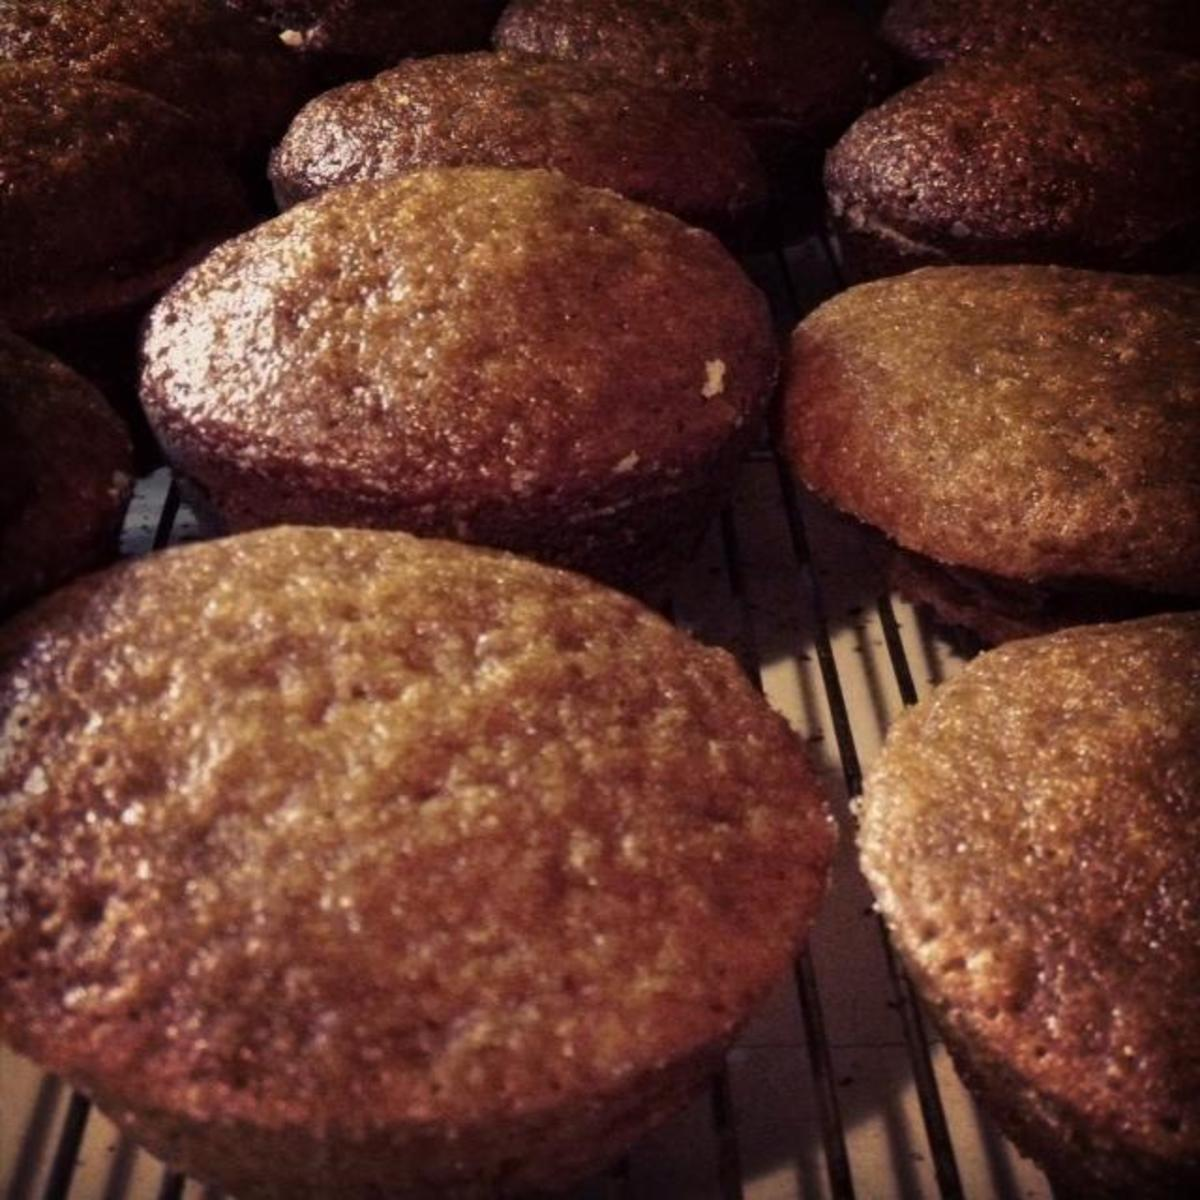 Pumpkin muffins just out of the oven and cooling on the rack.